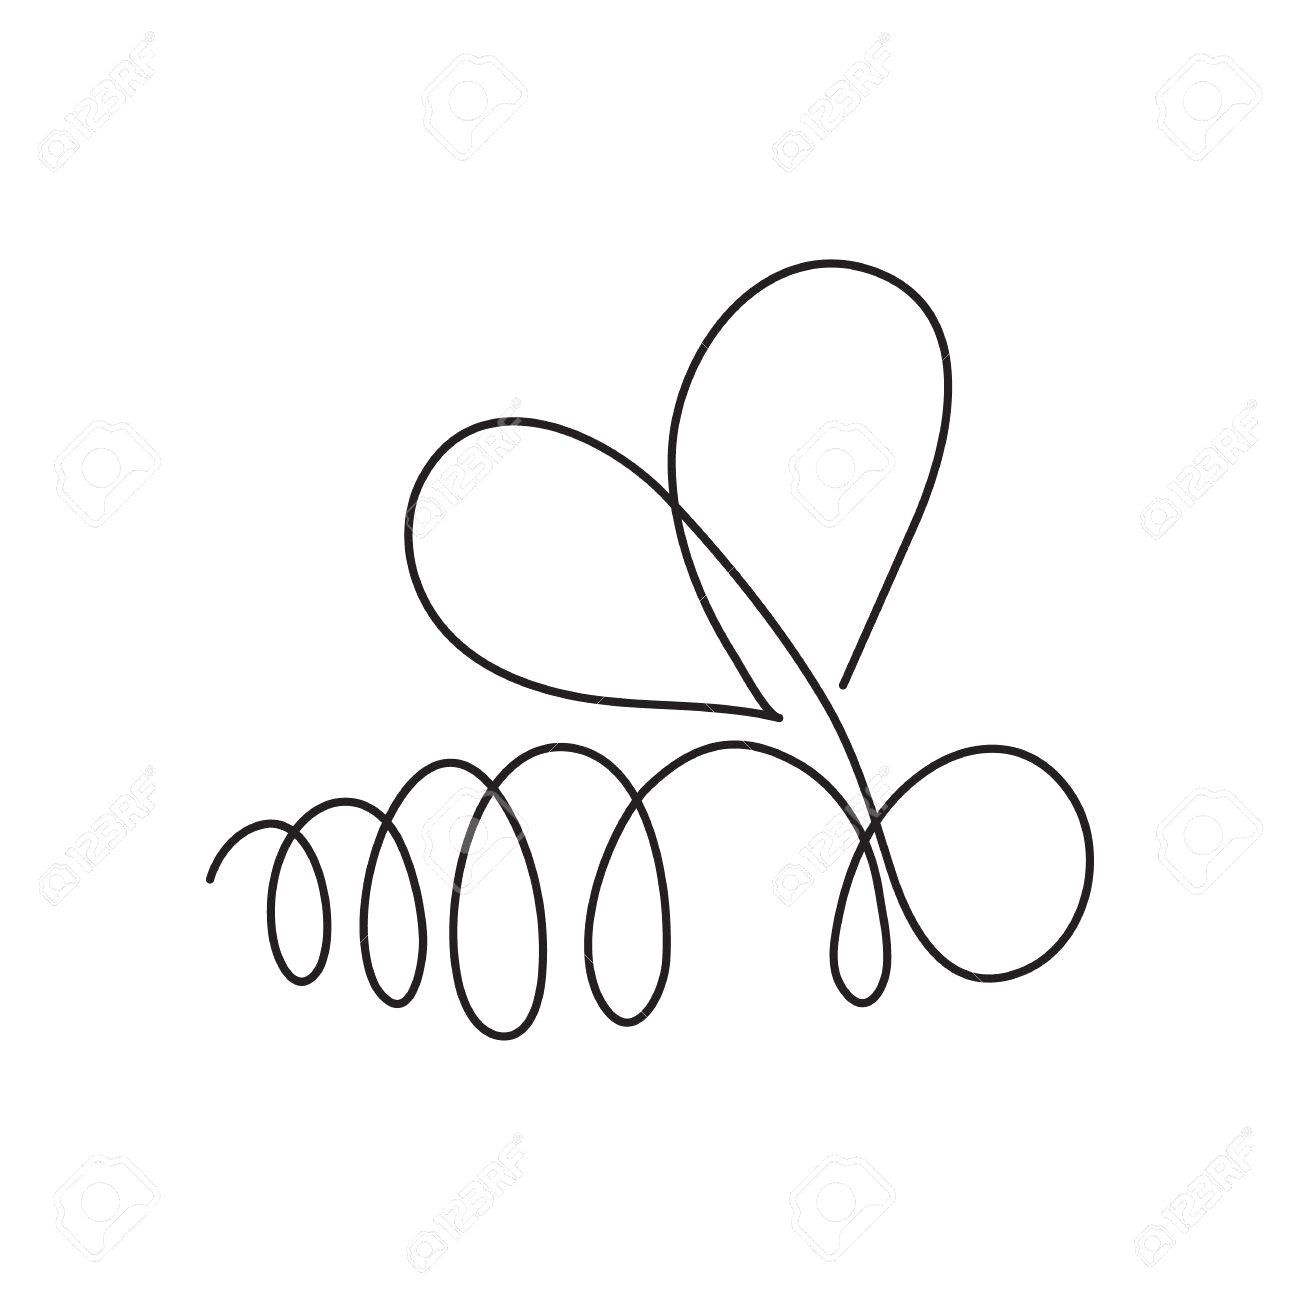 1300x1300 78677965 Continuous Line Bee Abstract Modern Decoration Vector